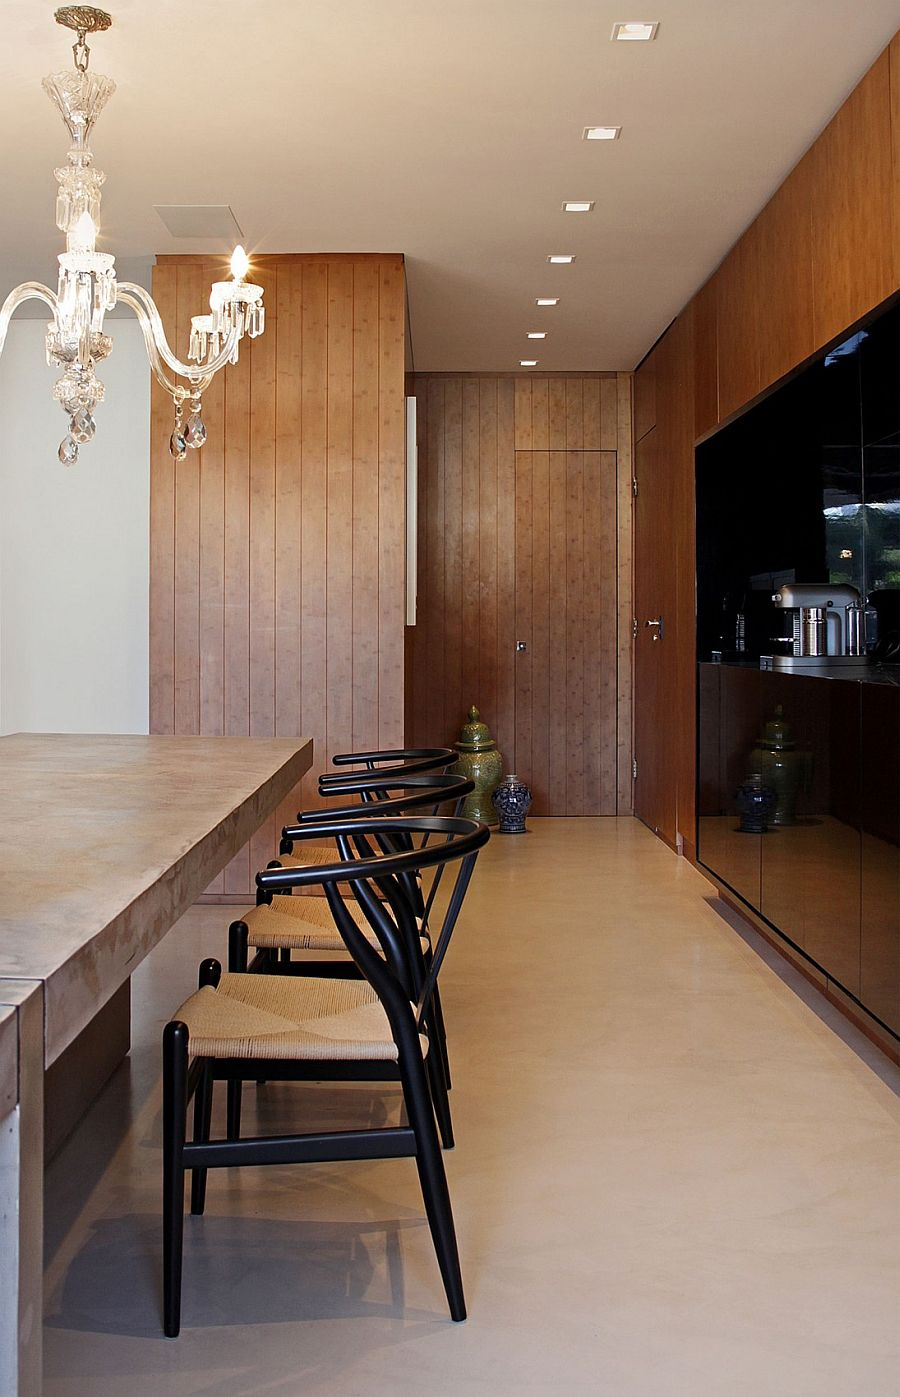 AHZ House in Brazil: Modern Minimalism Encased in Inviting Ambiance